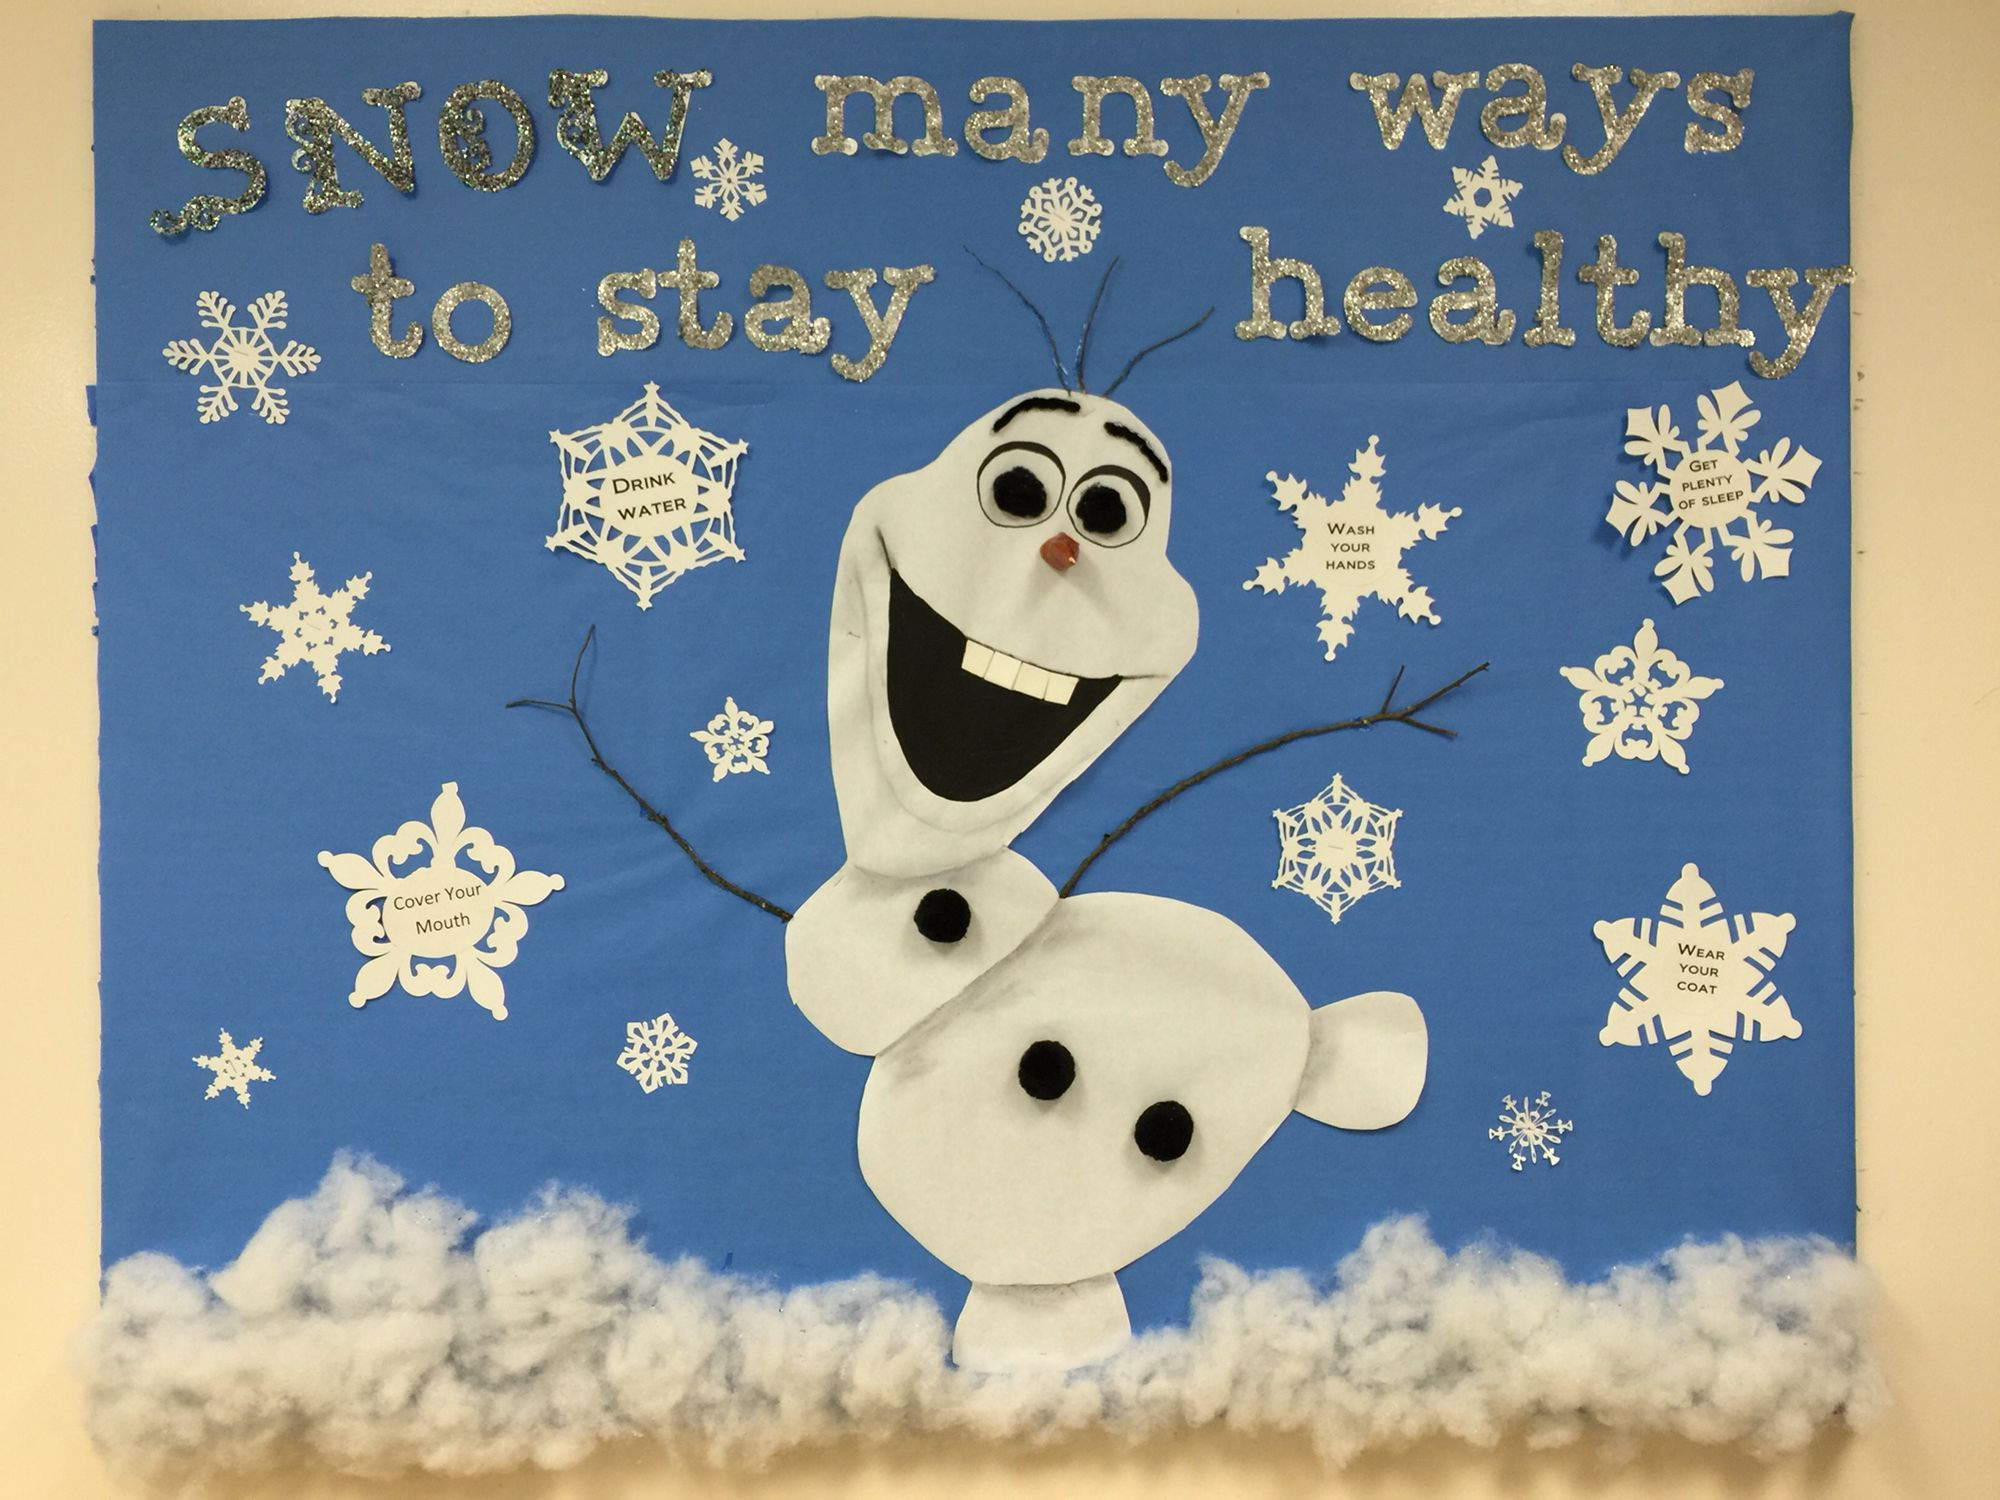 Go green vegetable bulletin board idea myclassroomideas com - Bulletin Board For The Winter Olaf From Frozen Designed By My Coworker And I For